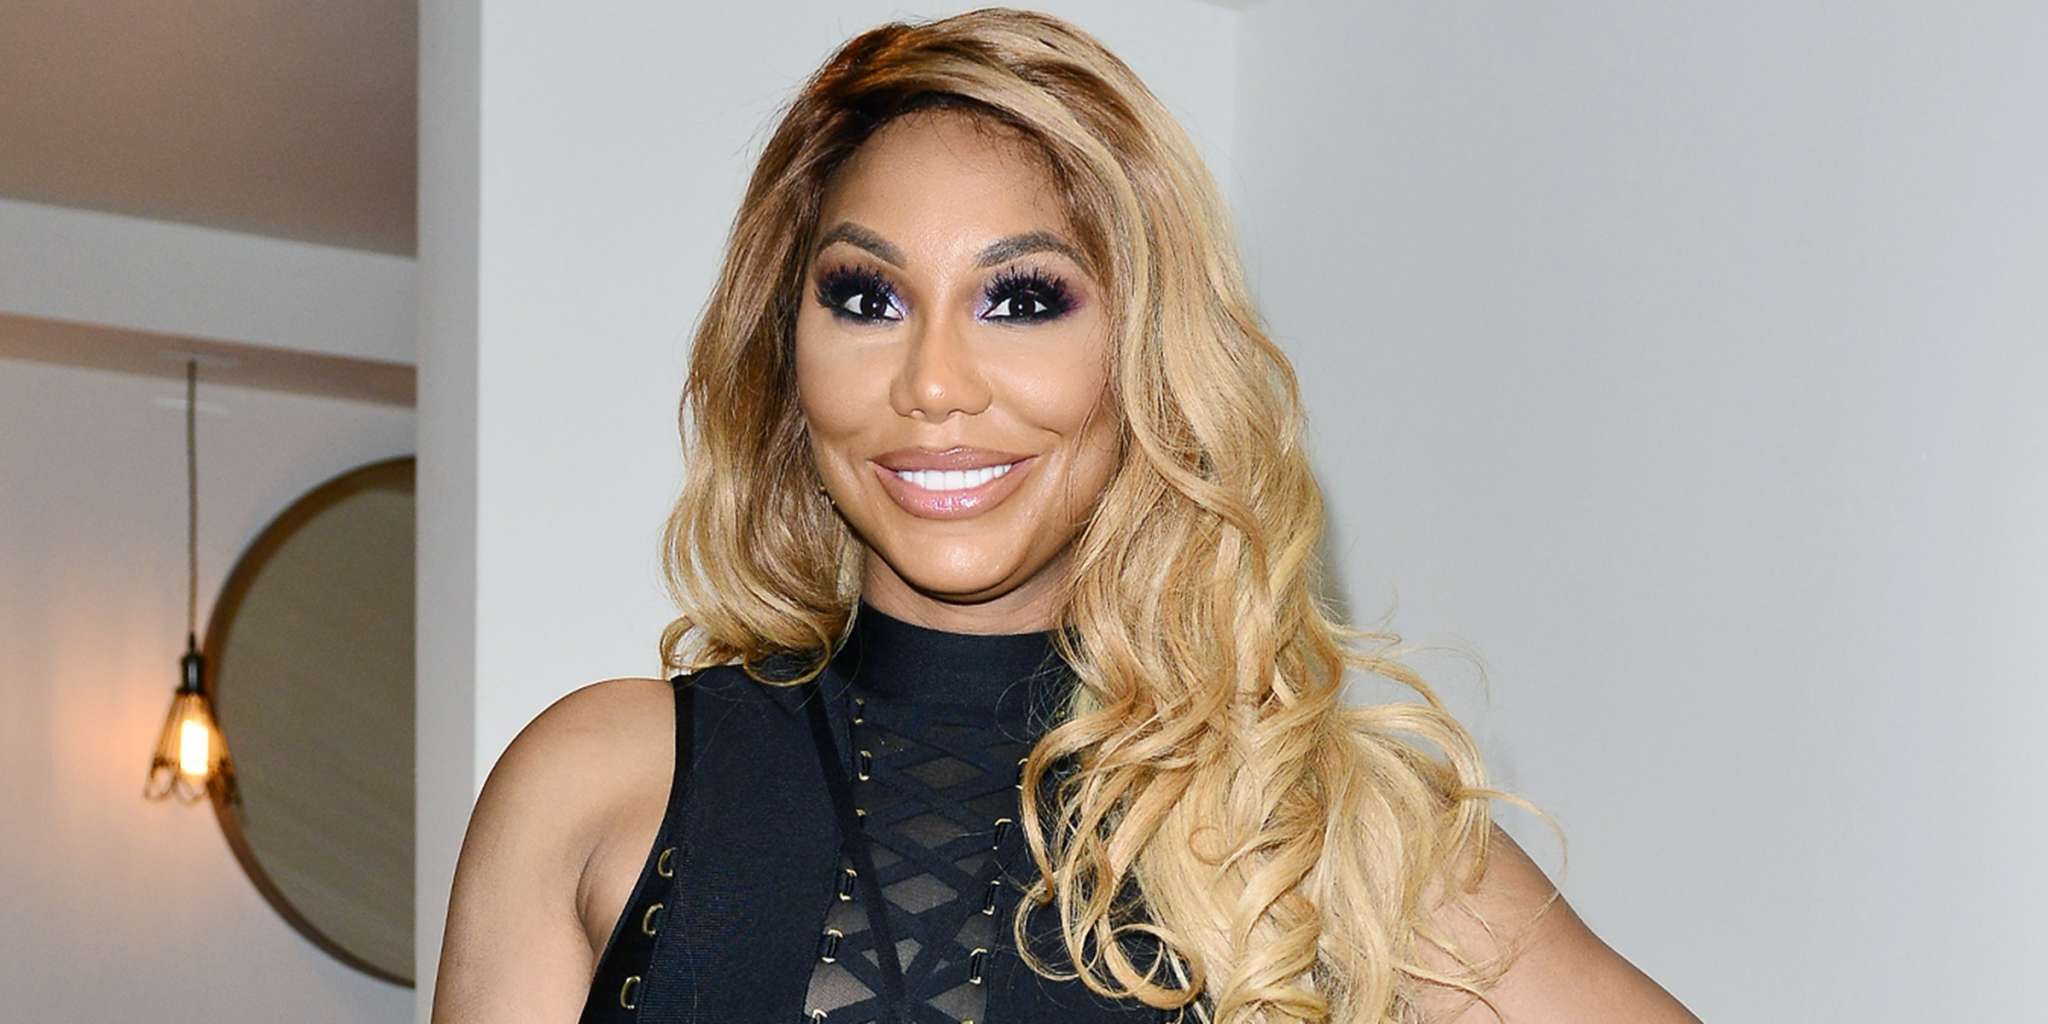 Tamar Braxton Shares A Photo In Which She Flaunts Her Beauty And Fans Are Here For It